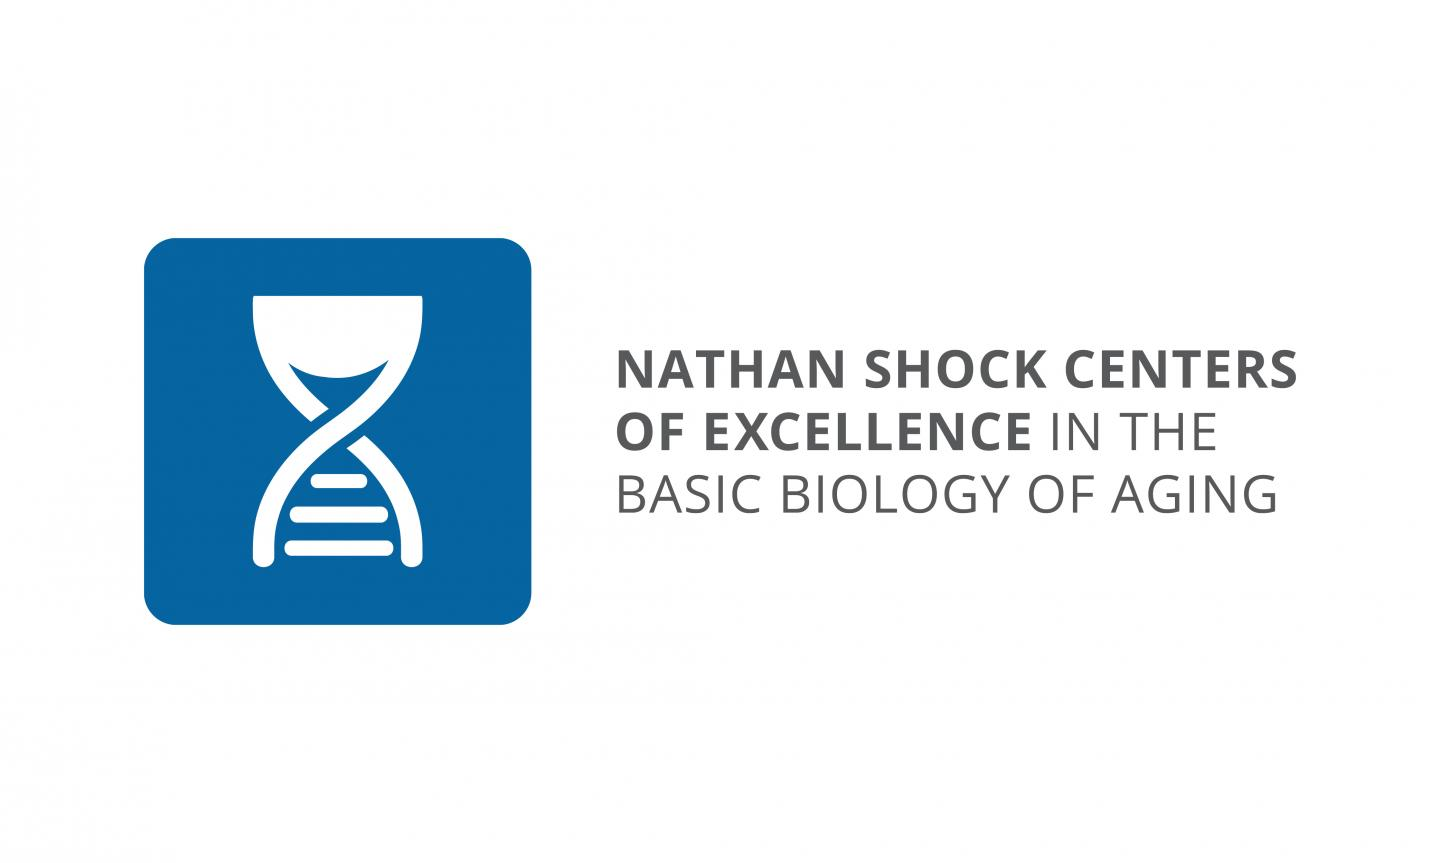 Nathan Shock Centers of Excellence in the Basic Biology of Aging